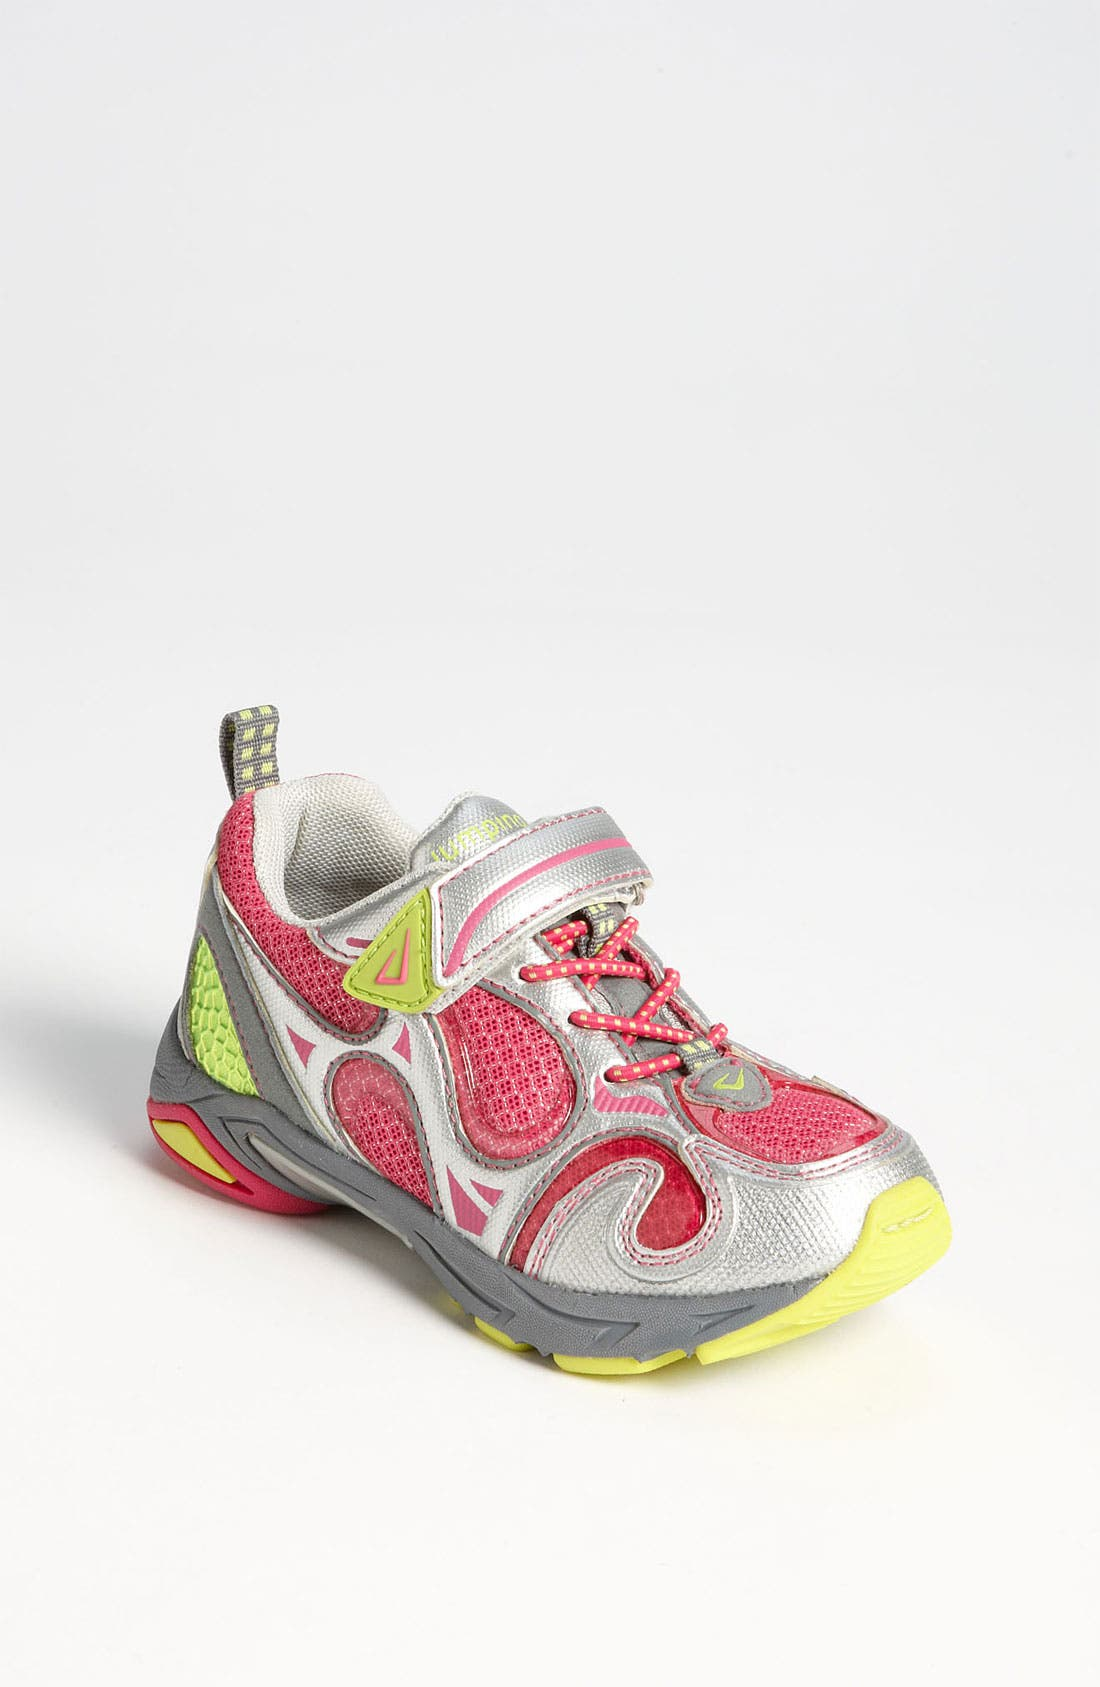 Alternate Image 1 Selected - Jumping Jacks 'Turtle Tuff' Sneaker (Toddler, Little Kid & Big Kid)